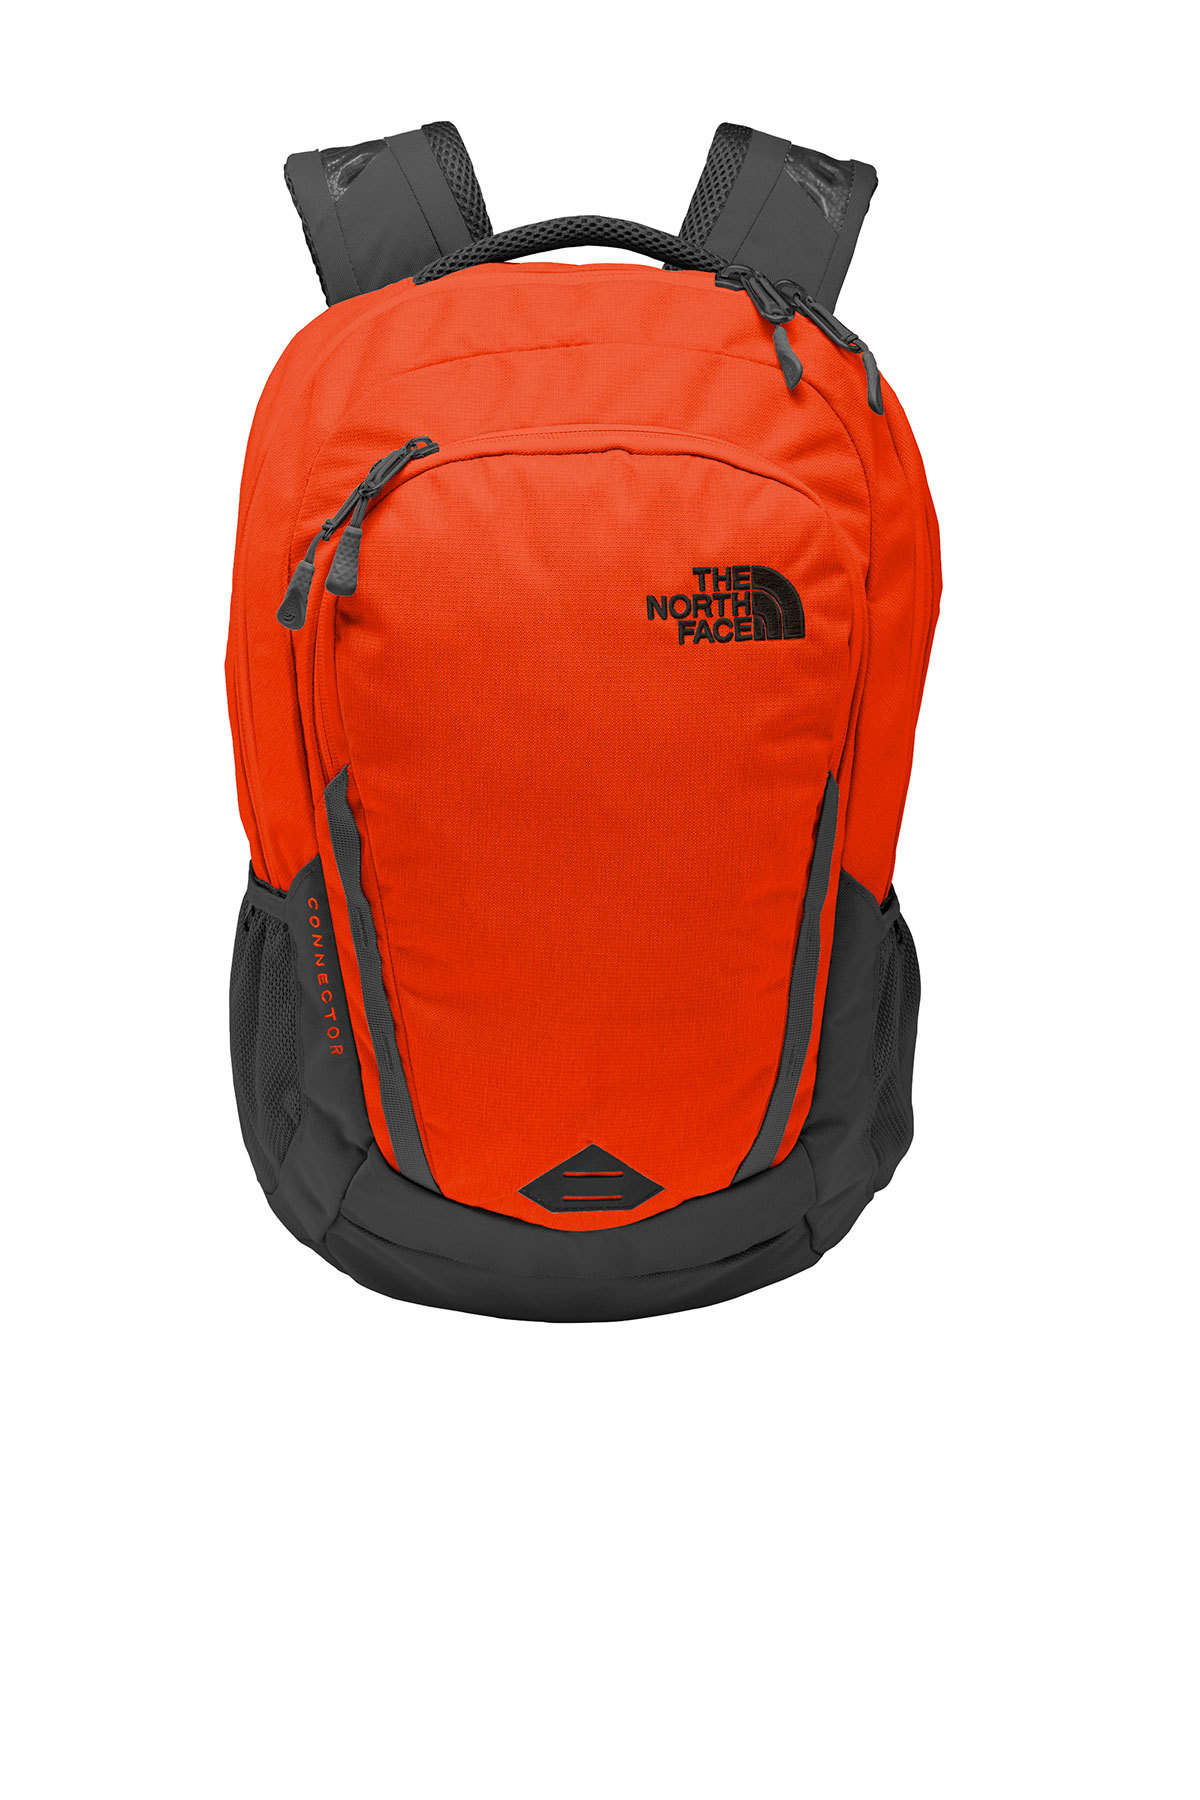 The North Face NF0A3KX8 - Connector Backpack